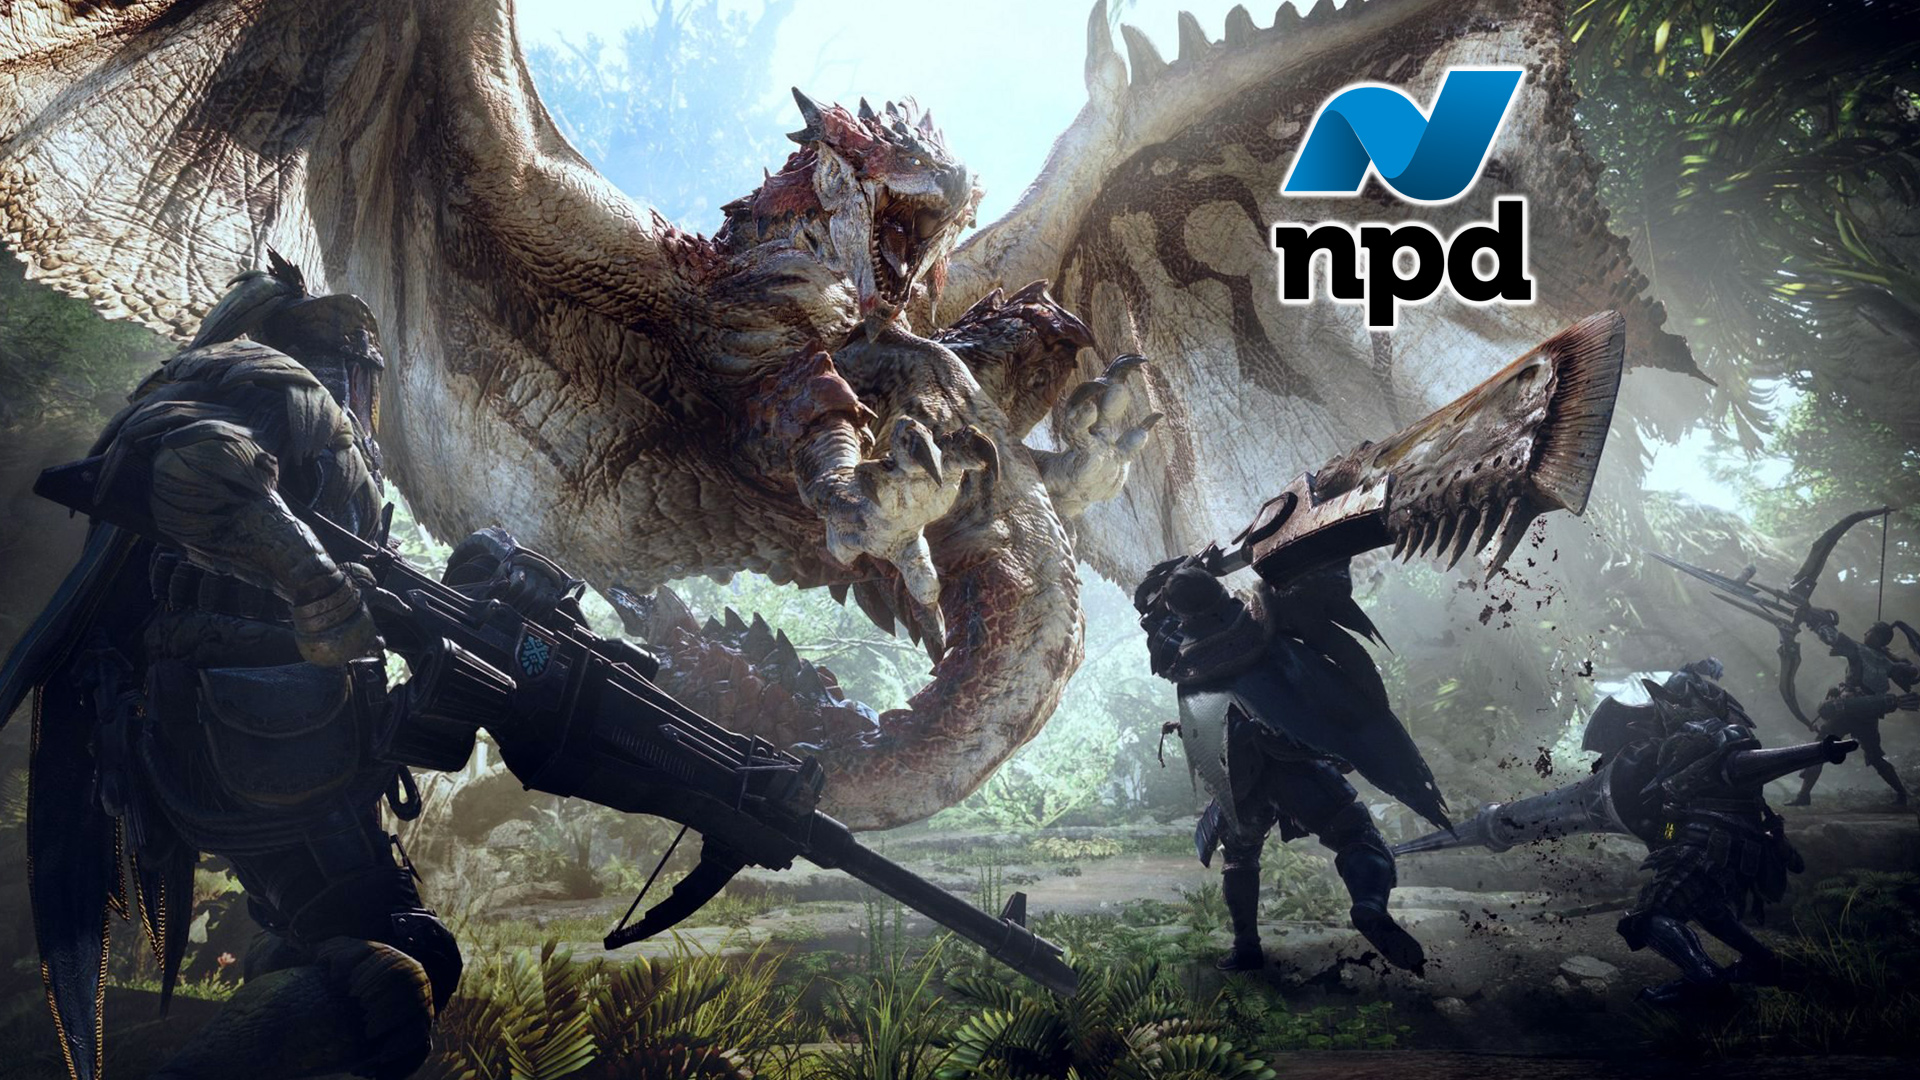 NPD January 2018 Gaming Estimates and Analysis: Monster Hunter Shatters Records